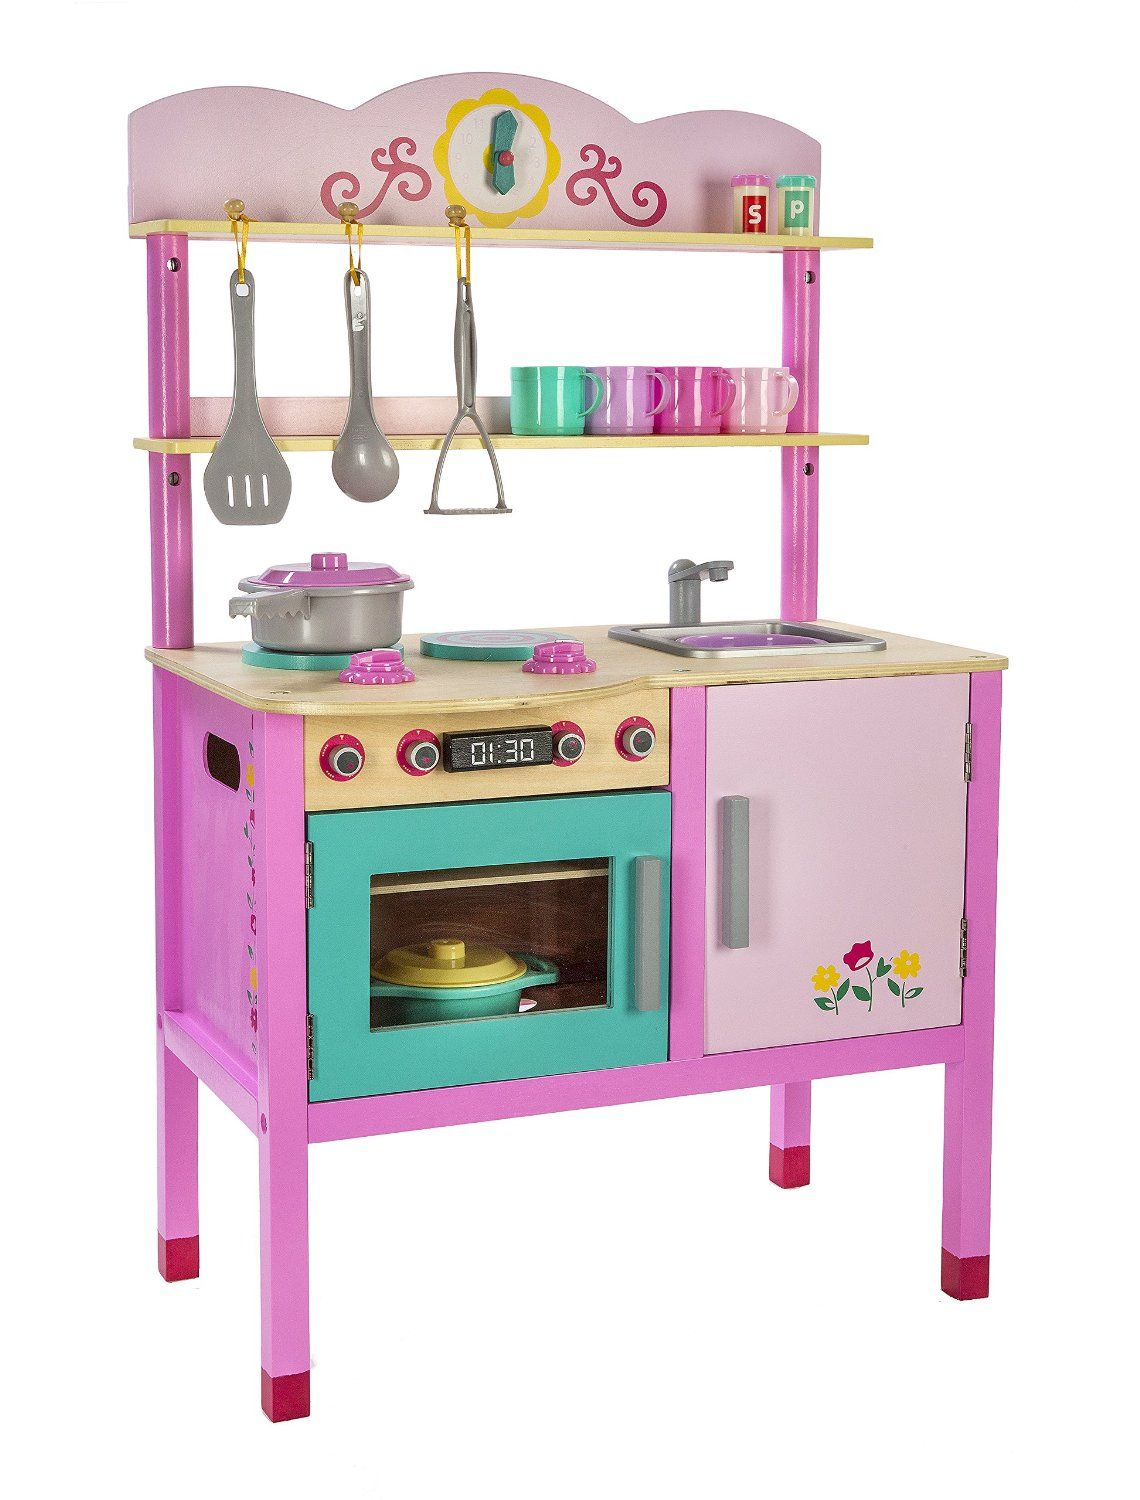 Amazon Com Play Circle Little Chef S Kitchen Teaches And Fosters Creativity 100 Bpa And Pvc Free Plastic Accessories Wo Home Decor Wooden Chefs Kitchen